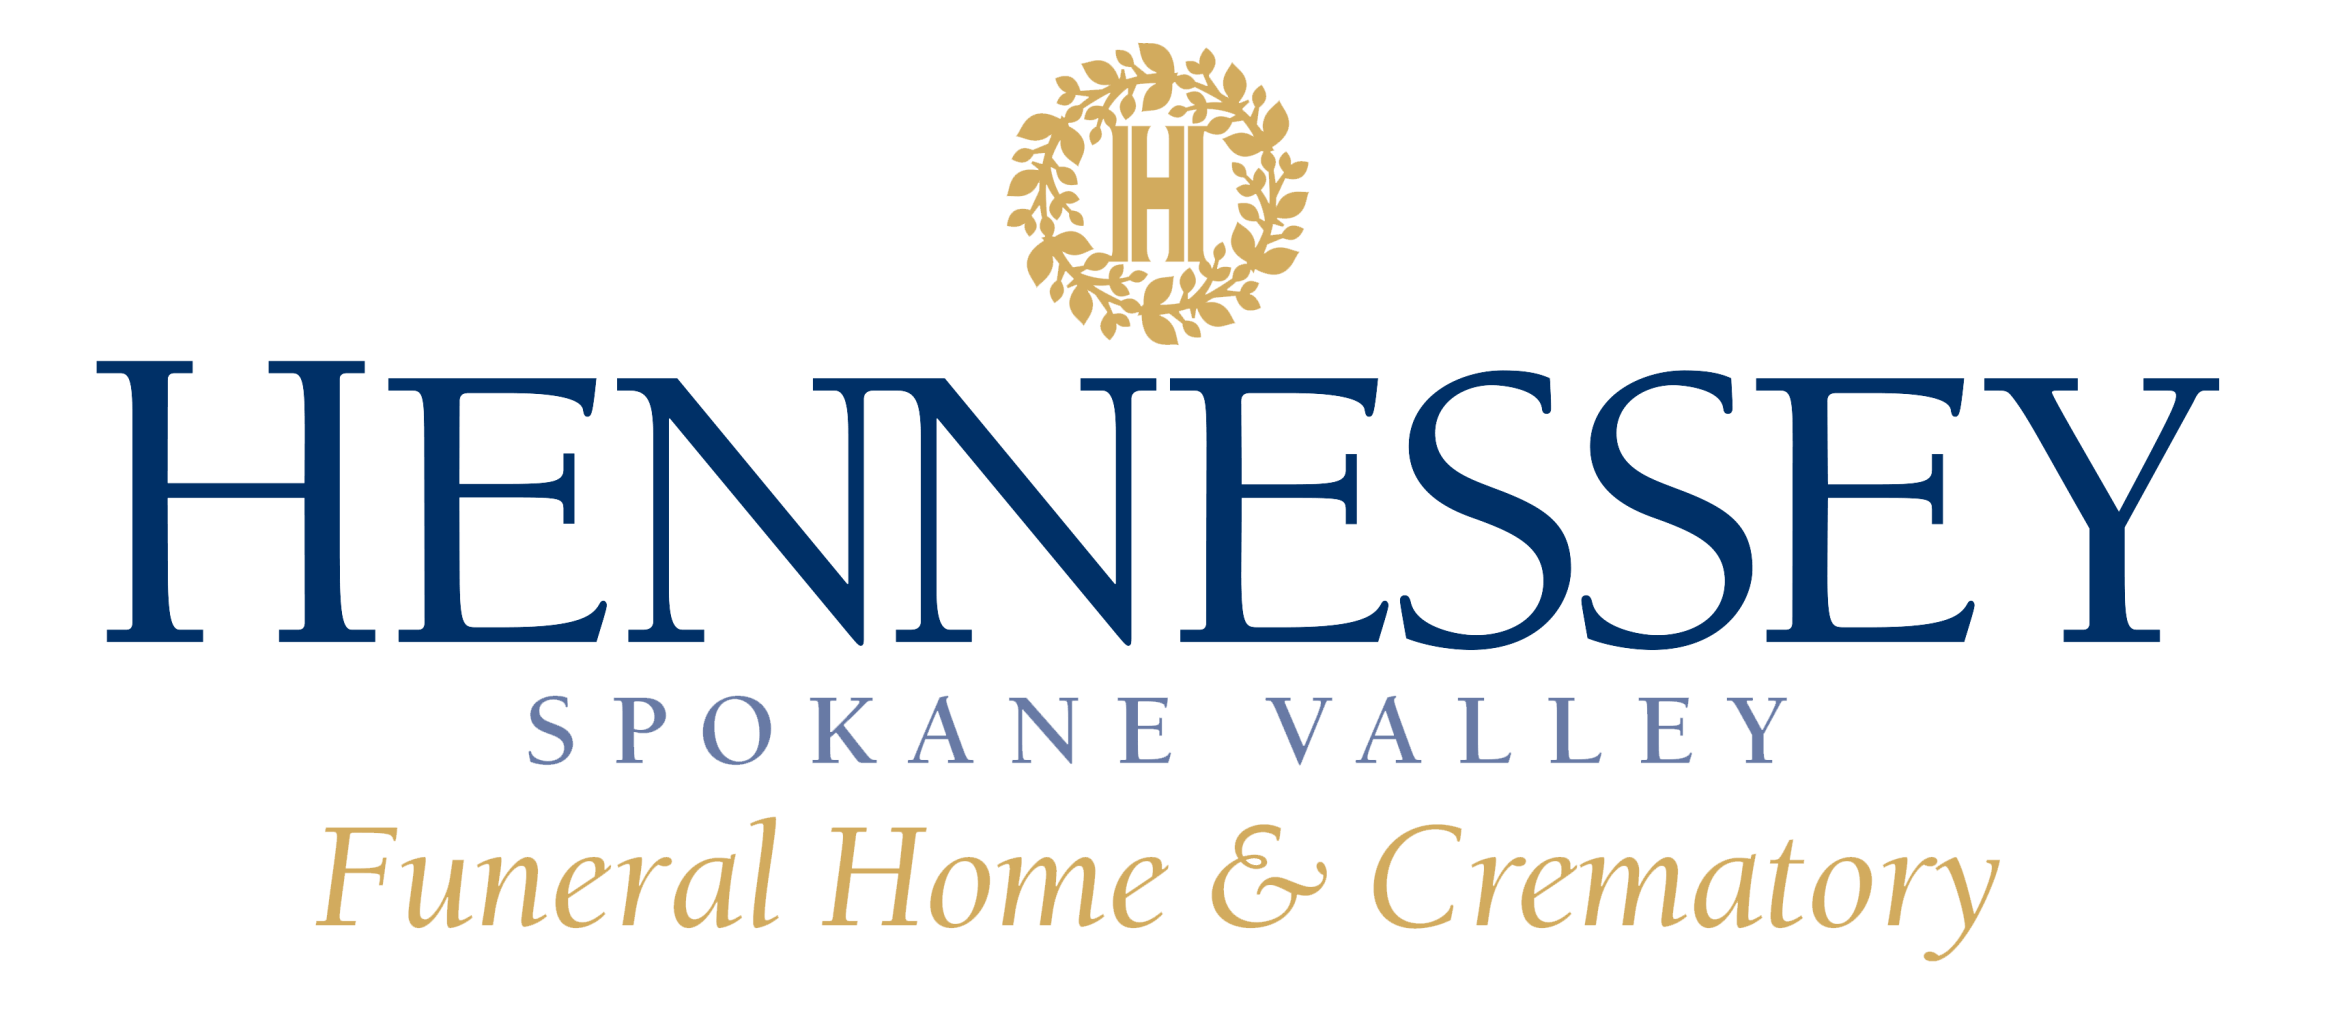 Hennessey Valley Funeral Home & Crematory in Spokane Valley, WA